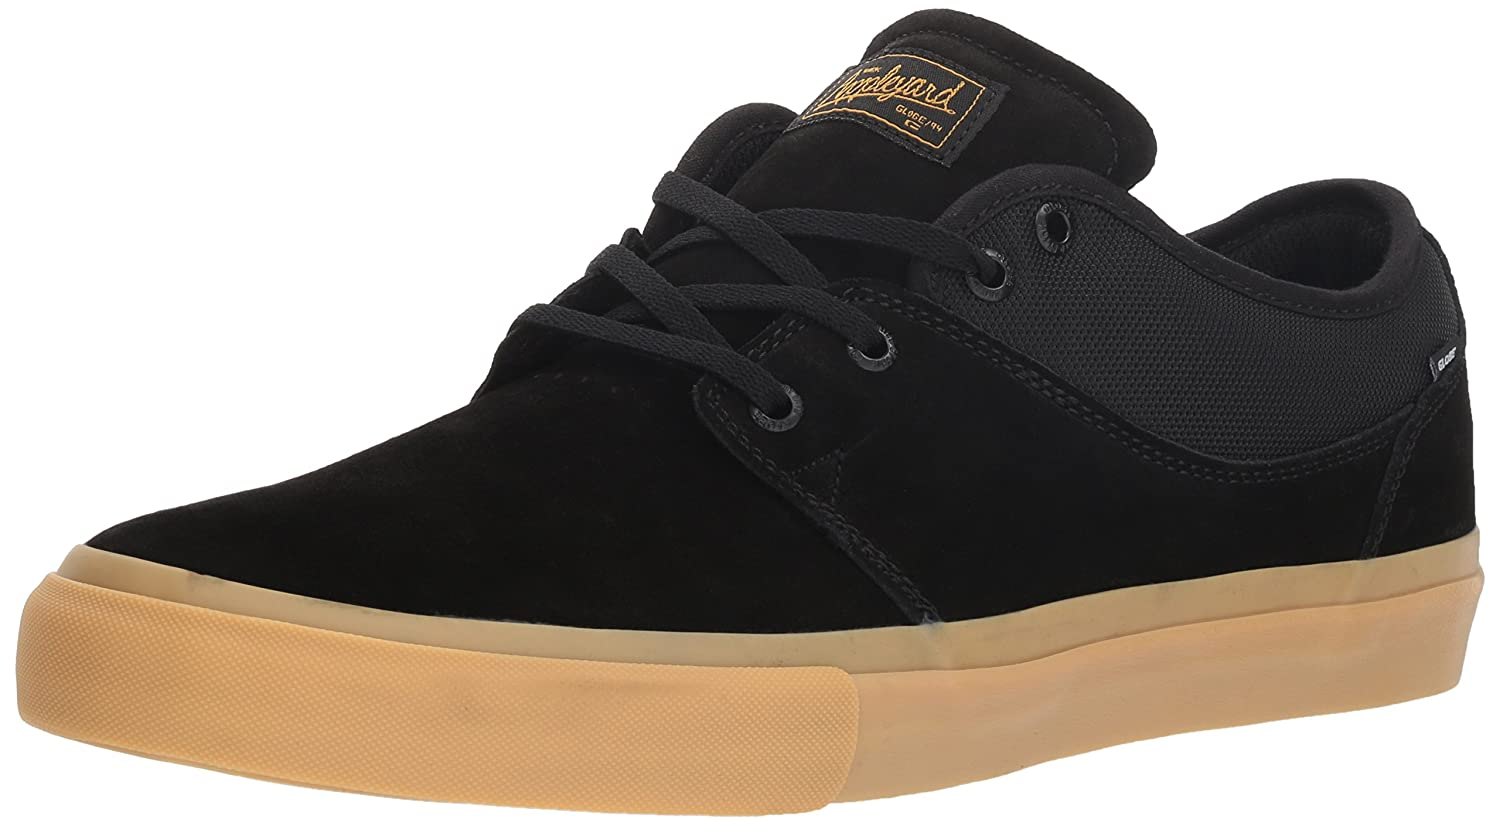 Globe Men's Mahalo Skate Shoe 8.5 M US|Black/Mid Gum